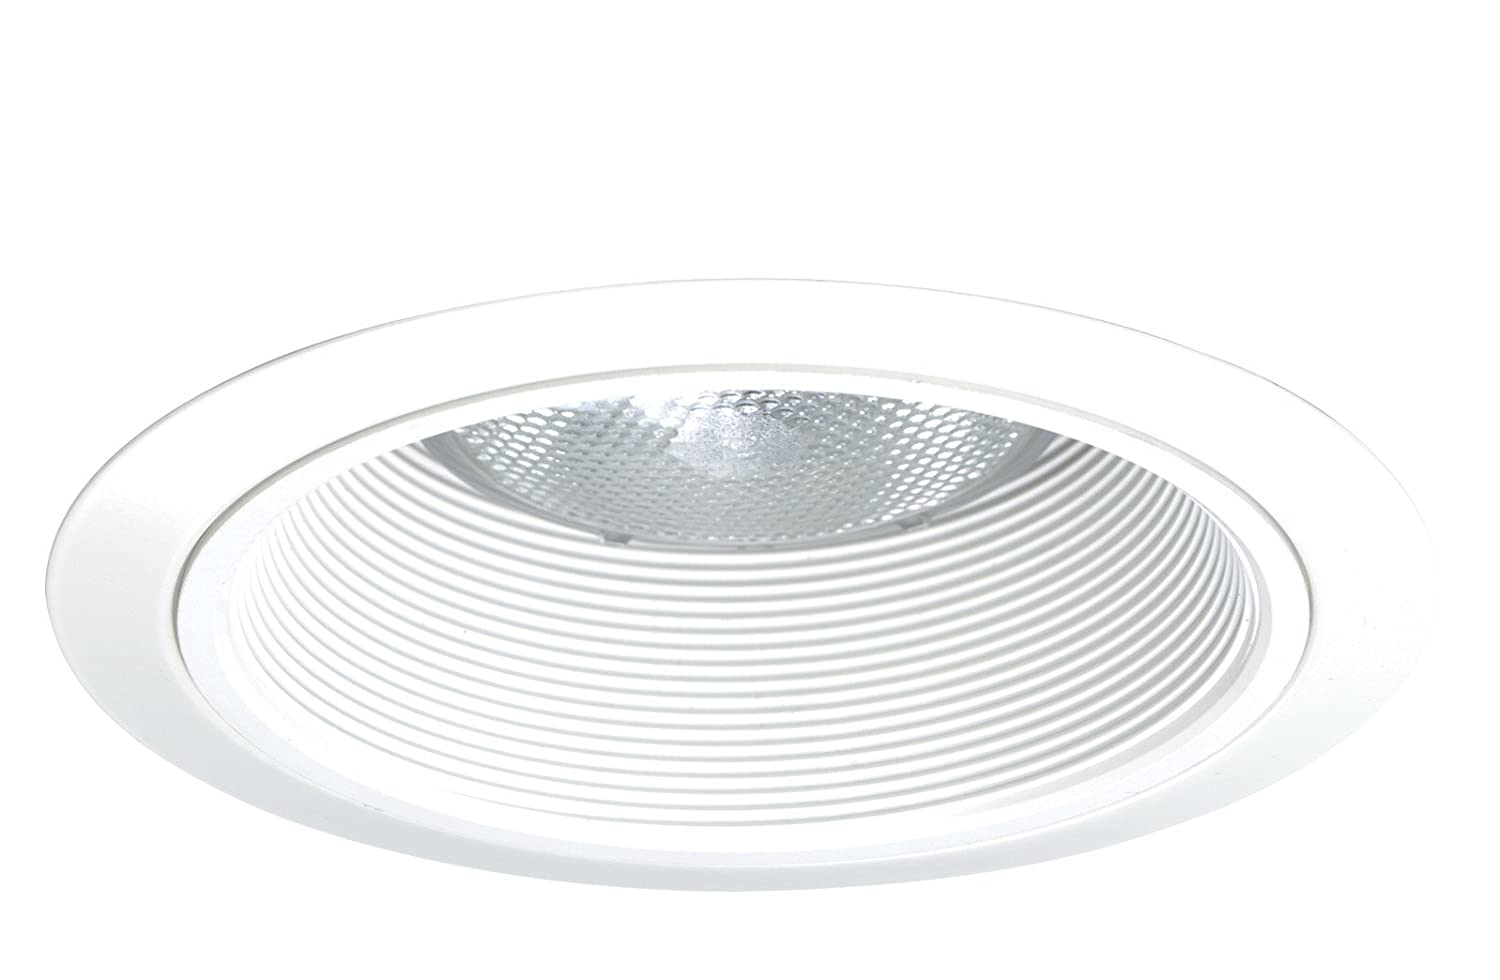 juno lighting 24wwh 6inch tapered downlight baffle white with white trim close to ceiling light fixtures amazoncom